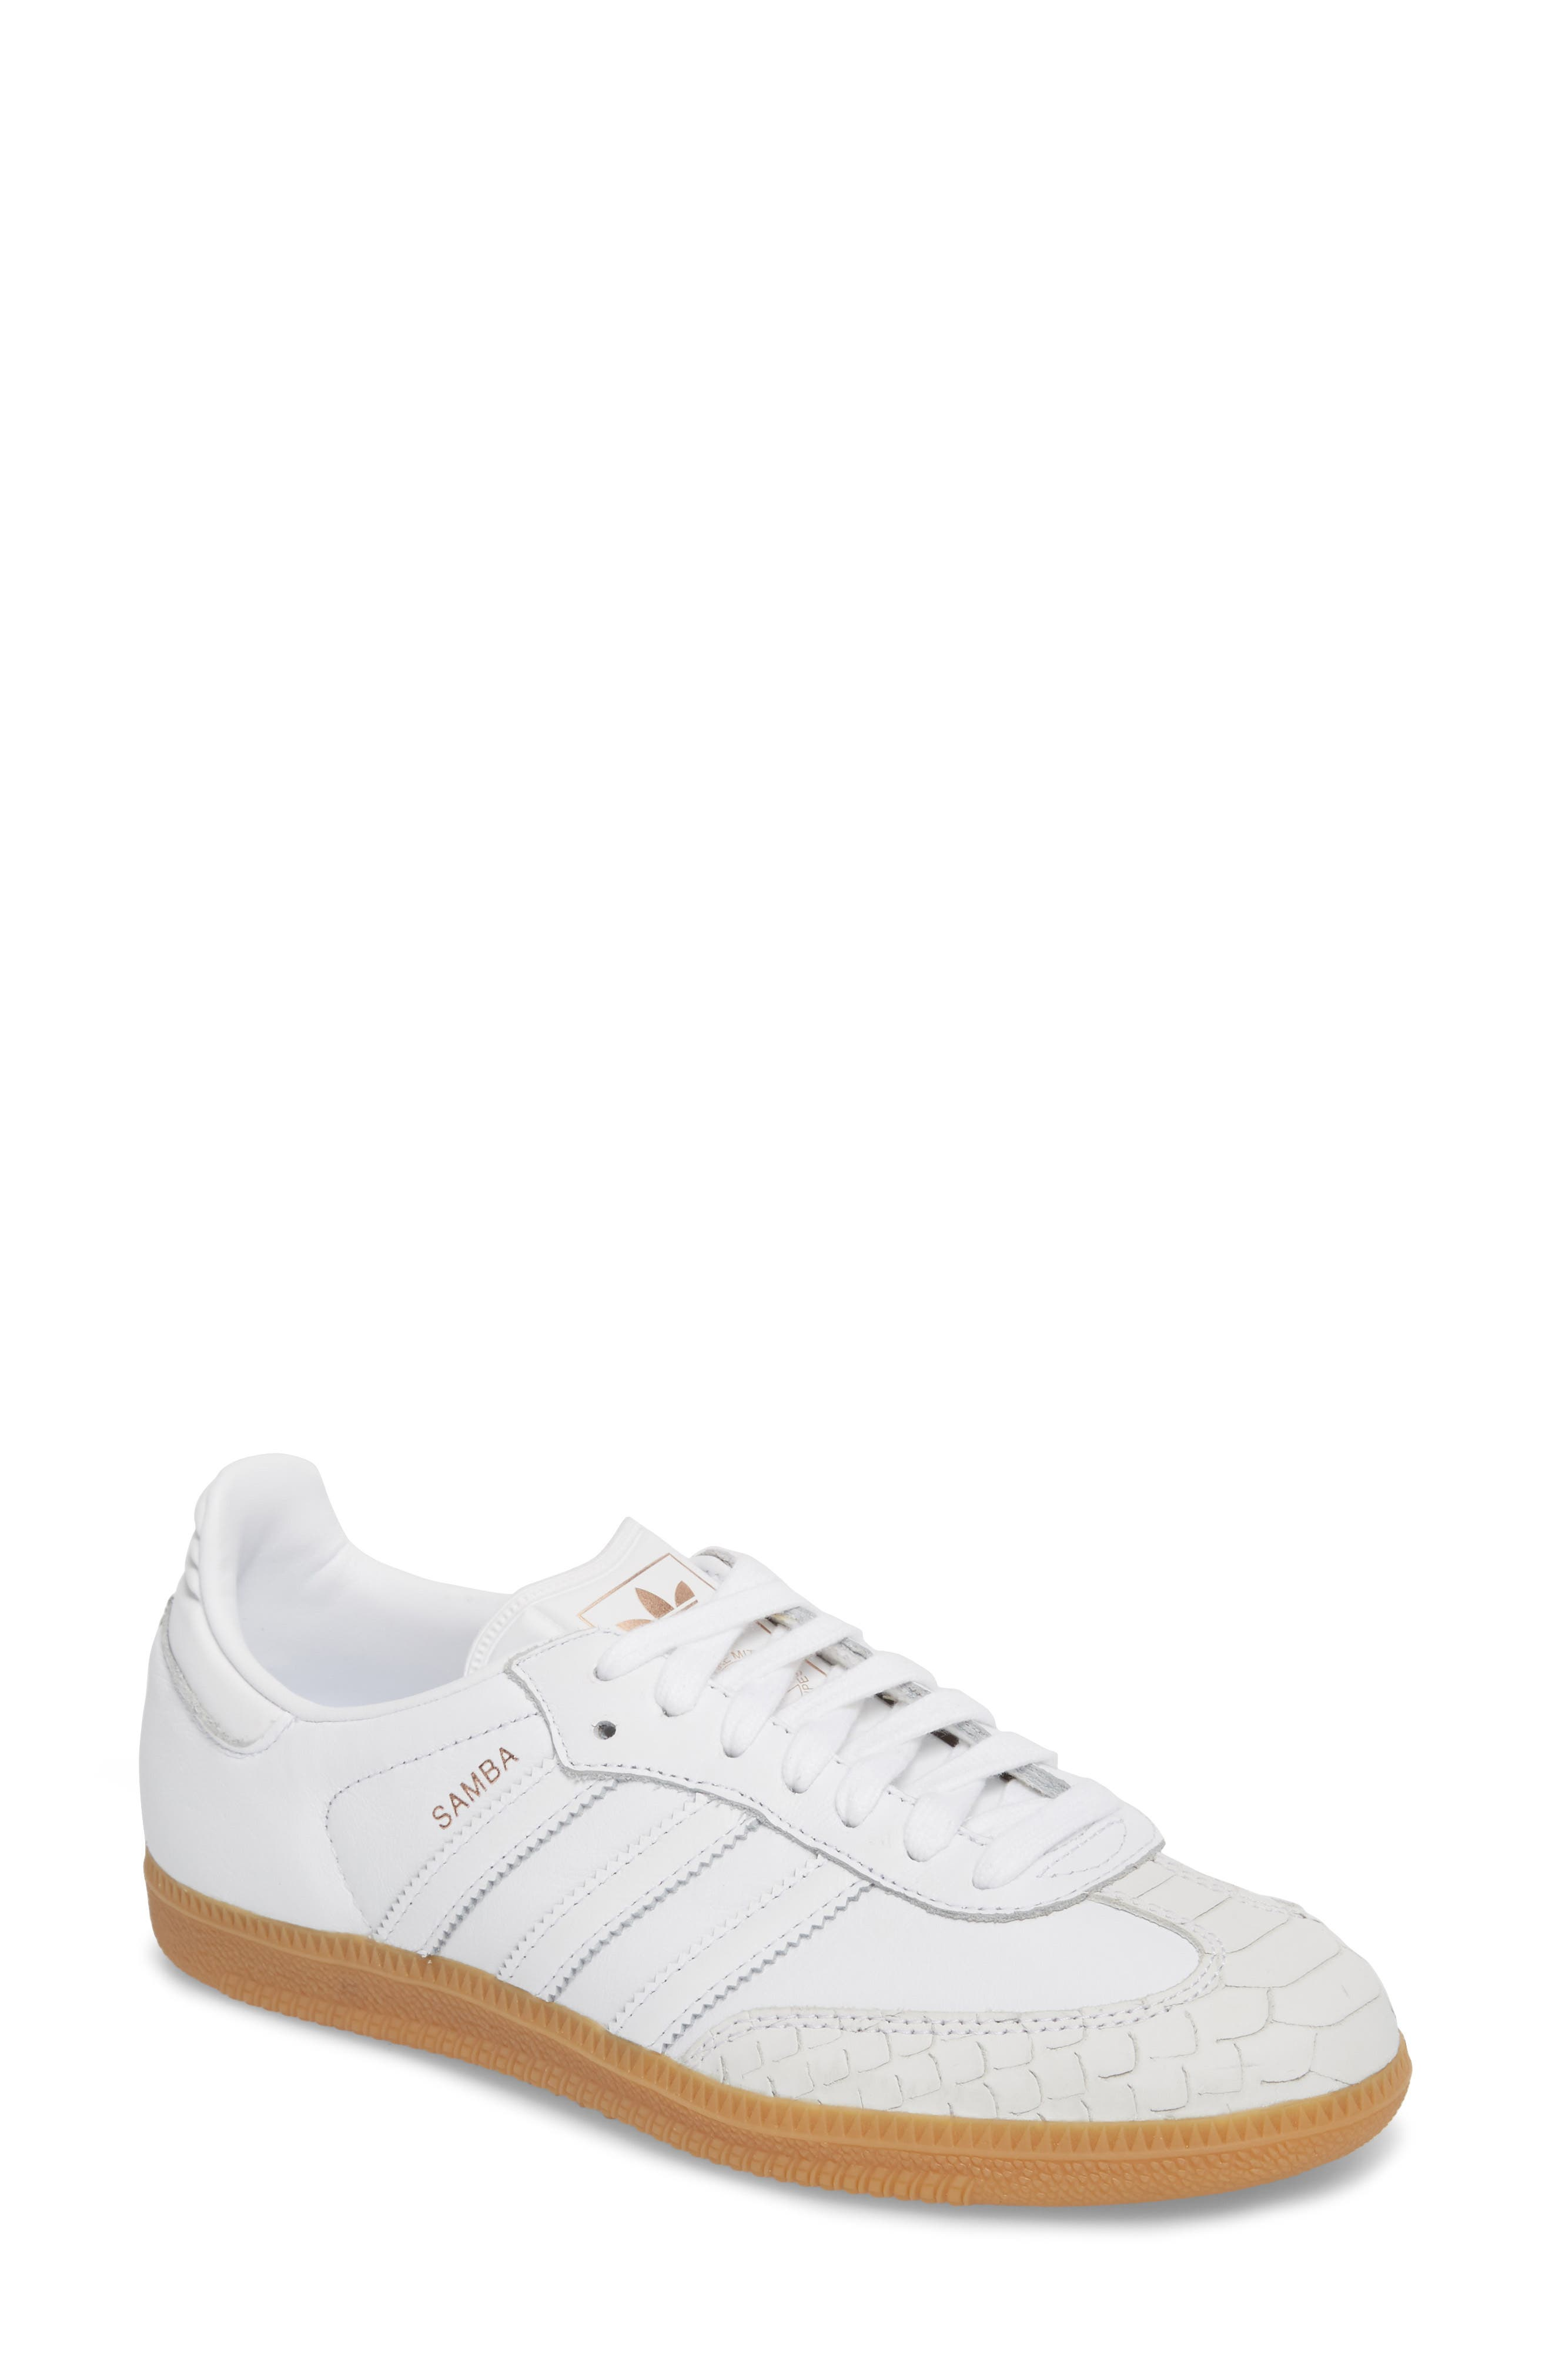 Women's Adidas Sneakers Vacation Clothes, Shoes & Accessory Ideas |  Nordstrom